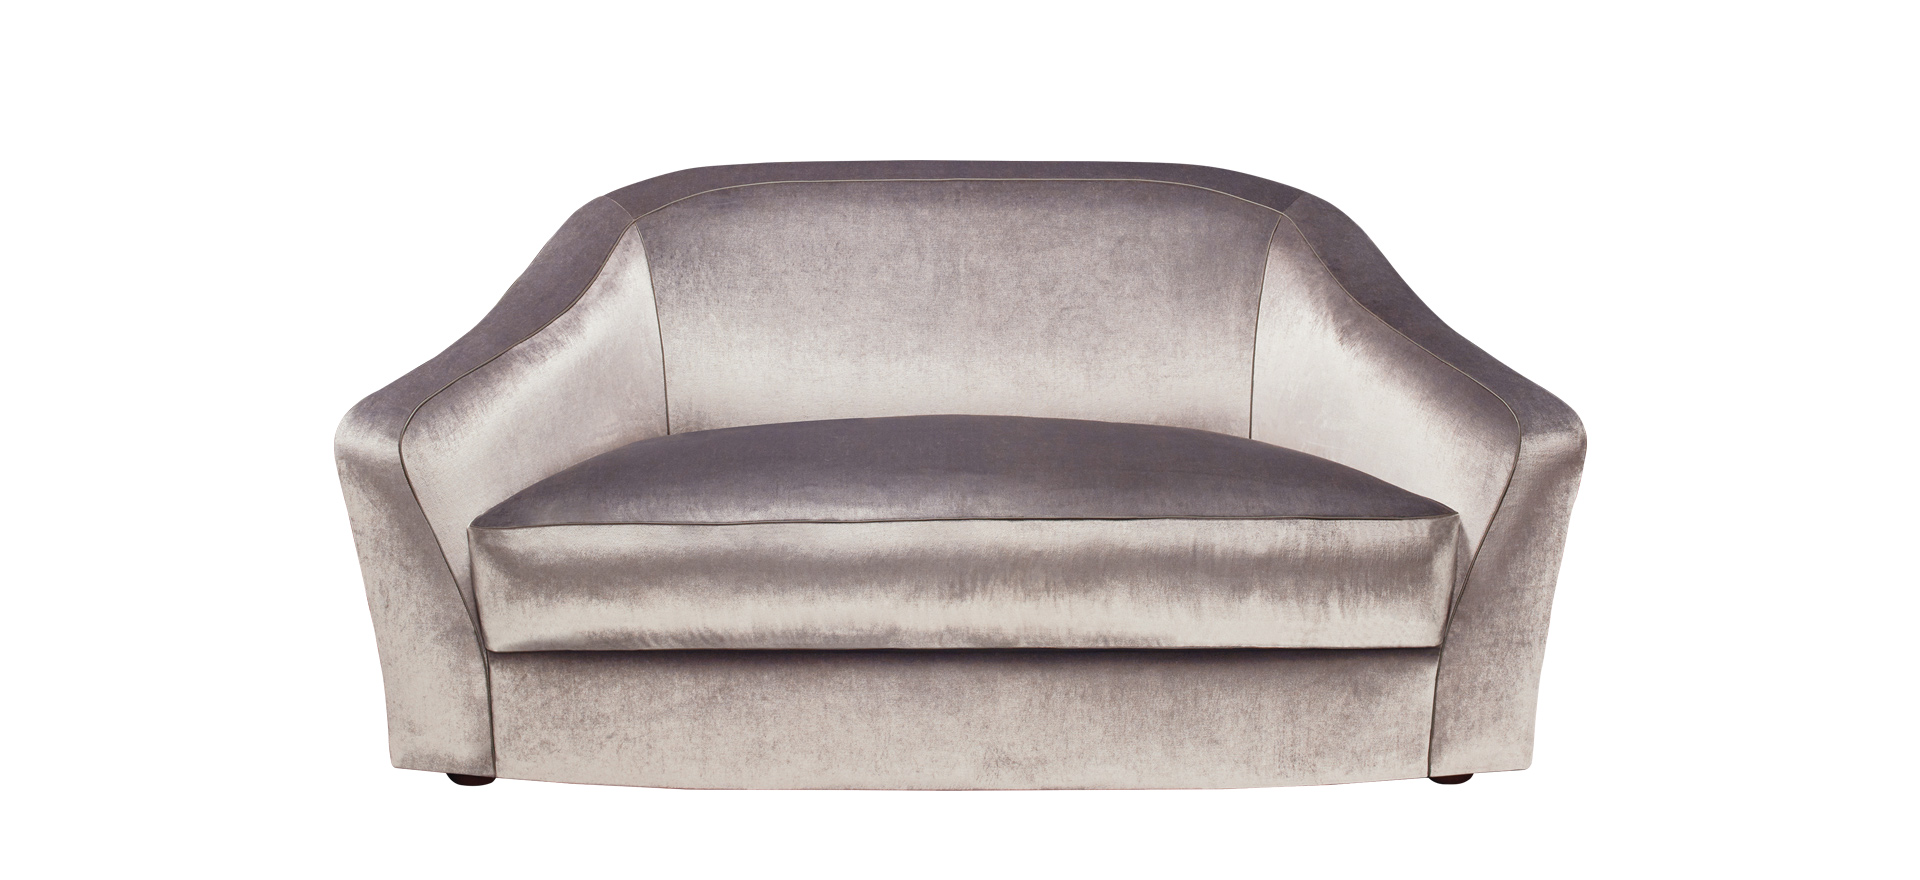 Fiore di Loto is a sofa covered in fabric or leather, from Promemoria's catalogue | Promemoria